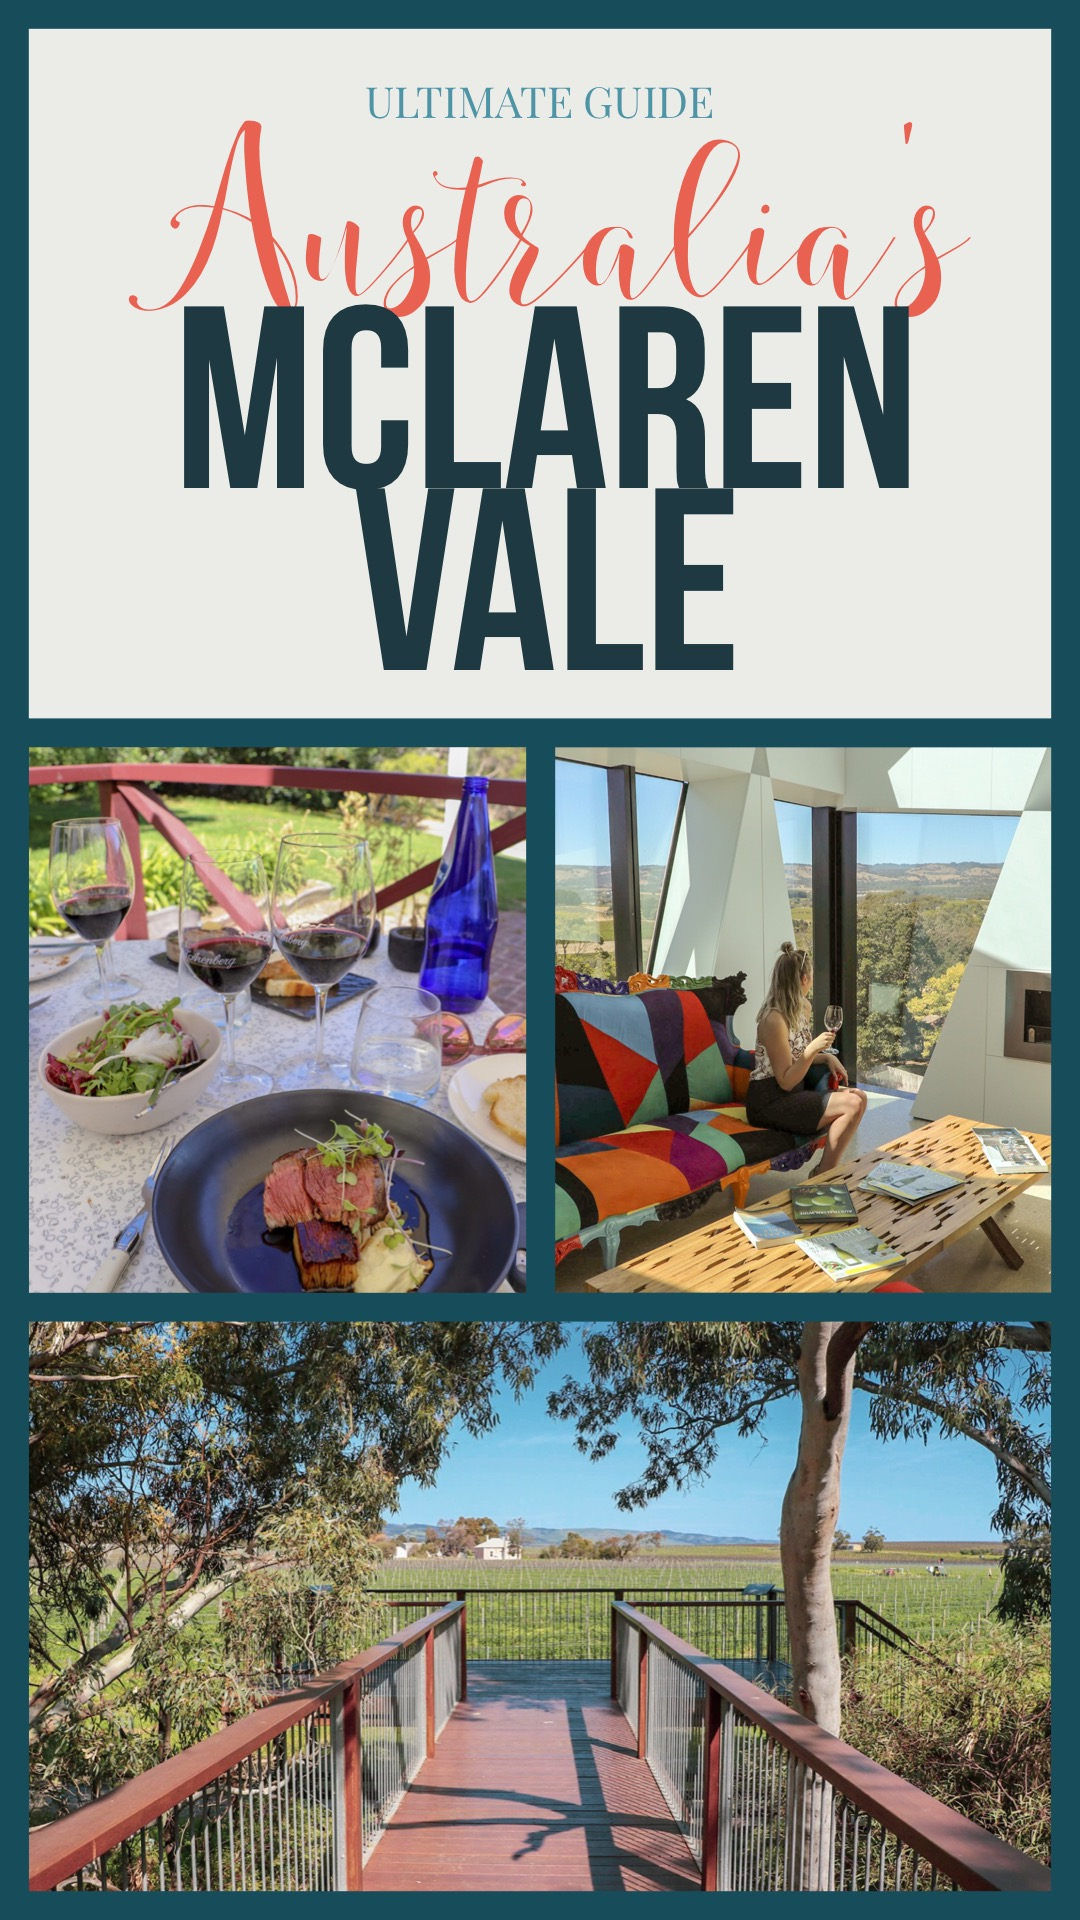 Guide to exploring Australia's McLaren Vale! Find the best Australian wineries, restaurants and places to stay in McLaren Vale!